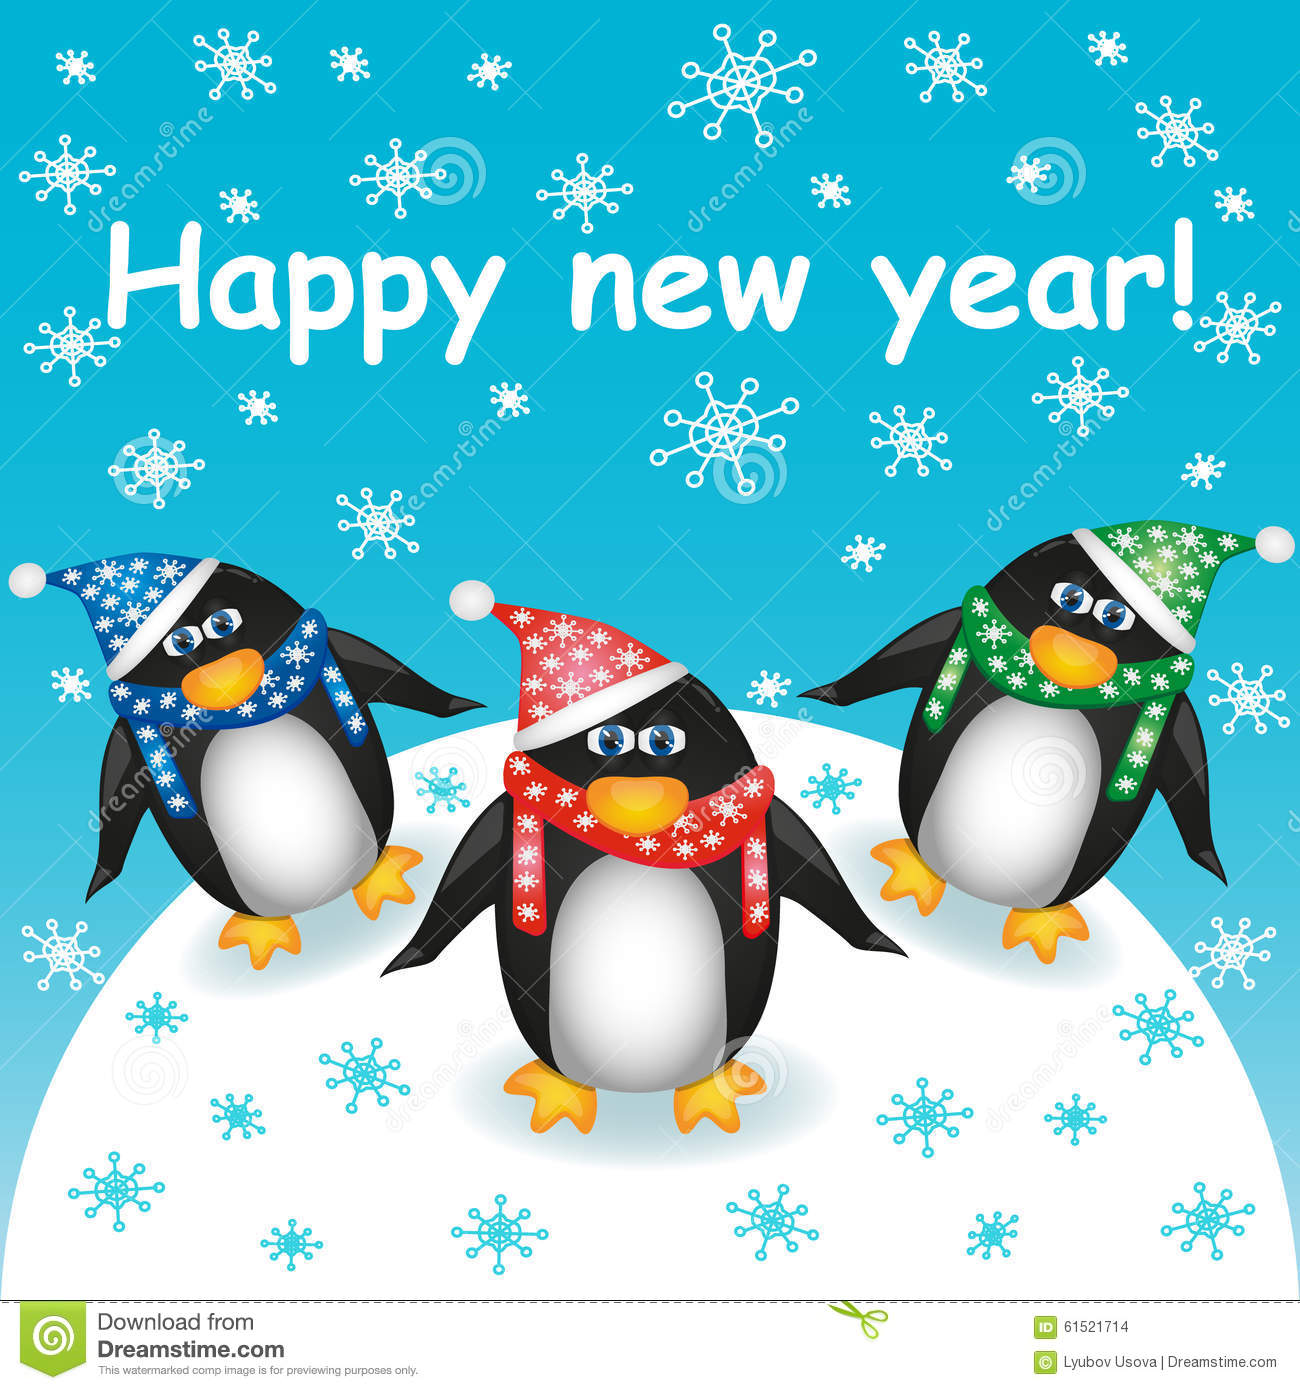 happy new year postcard with three cute cartoon penguins in hats and scarves against the